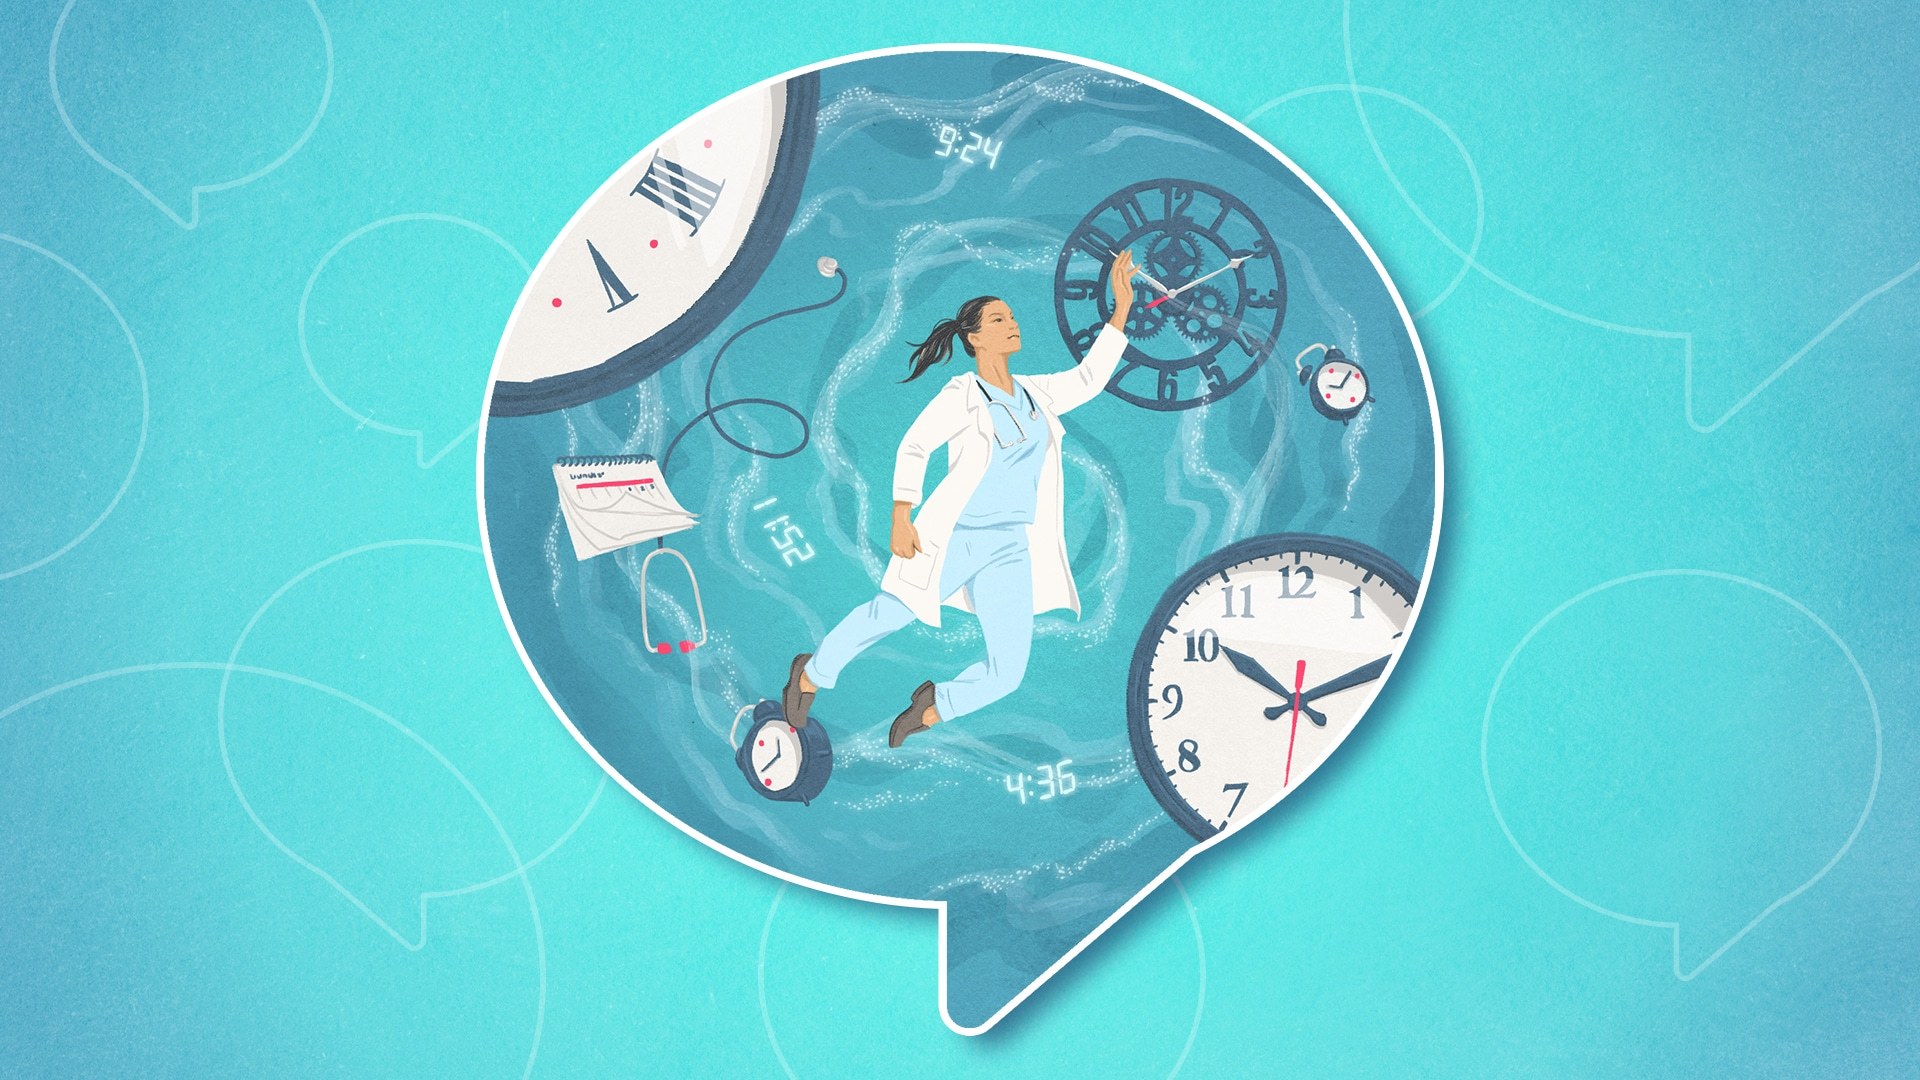 Female Doctor floats in a whirlpool of clocks, calendars and medical equipment